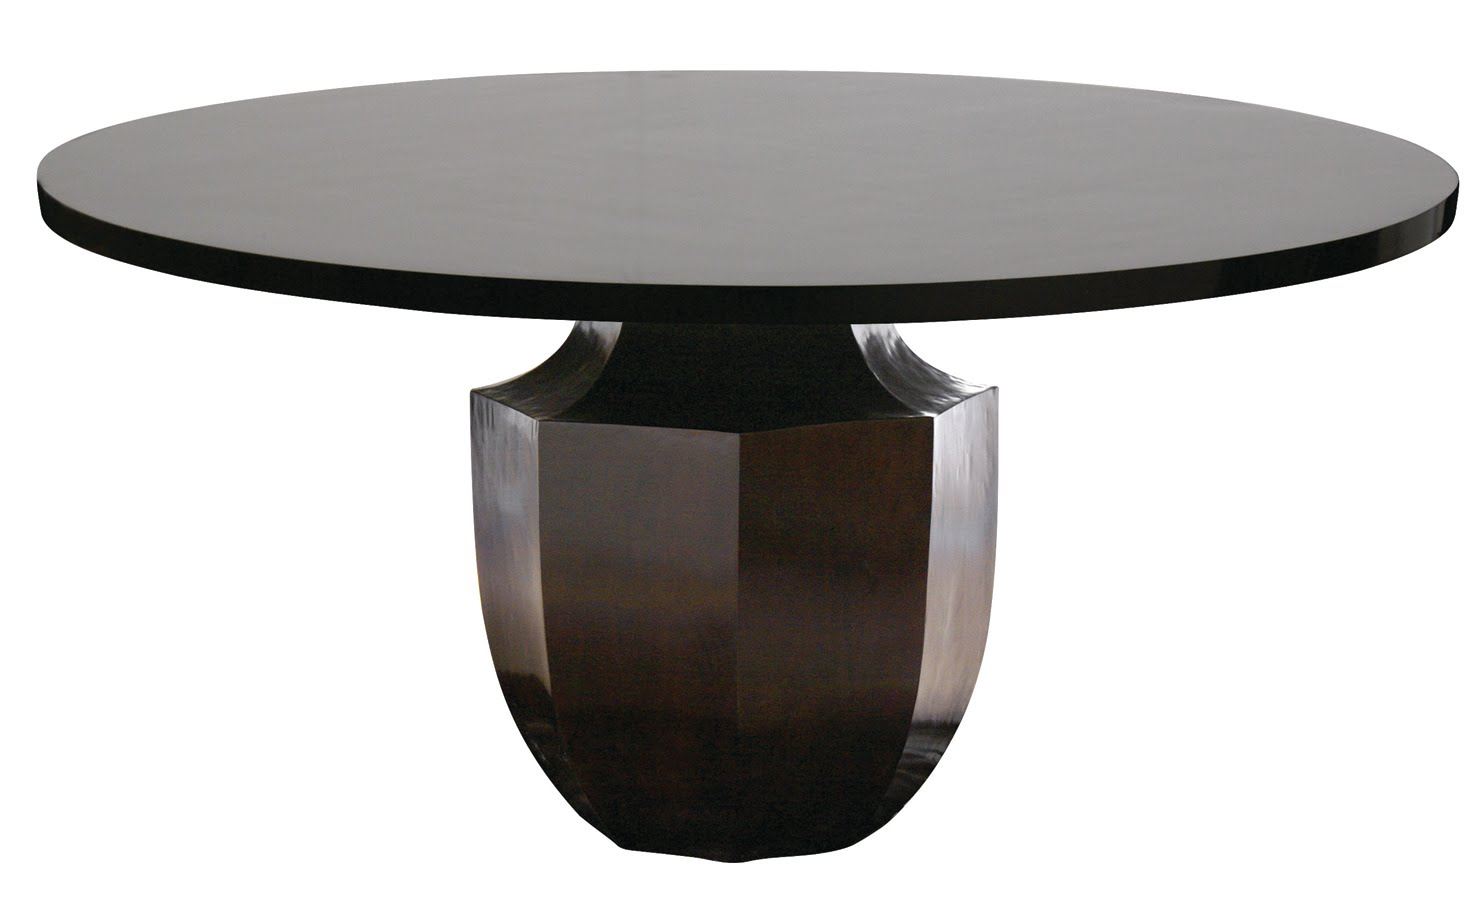 round dining table - photo #29